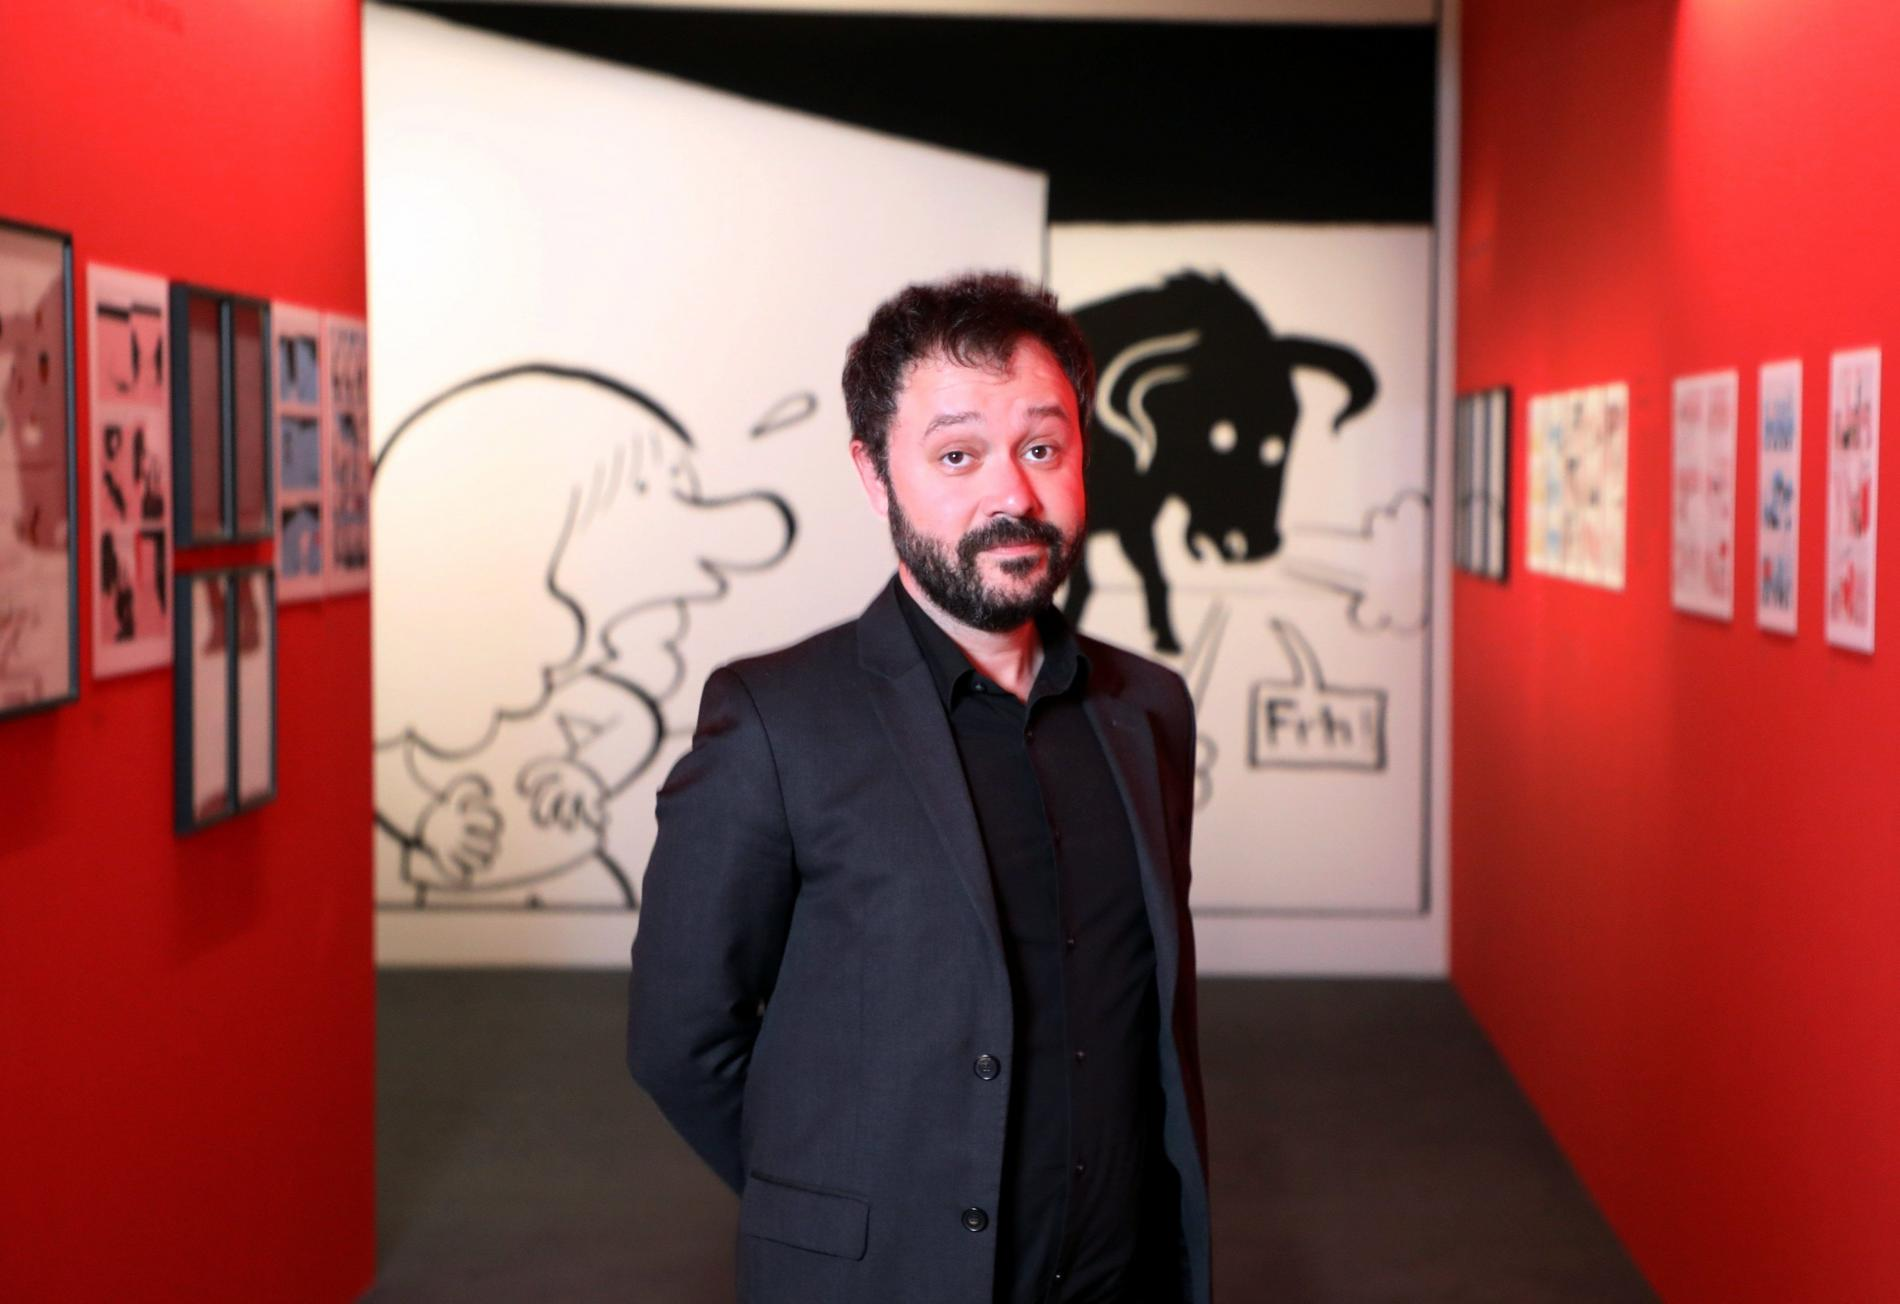 riad-sattouf-pompidou-exposition-news-art-mecenavie3